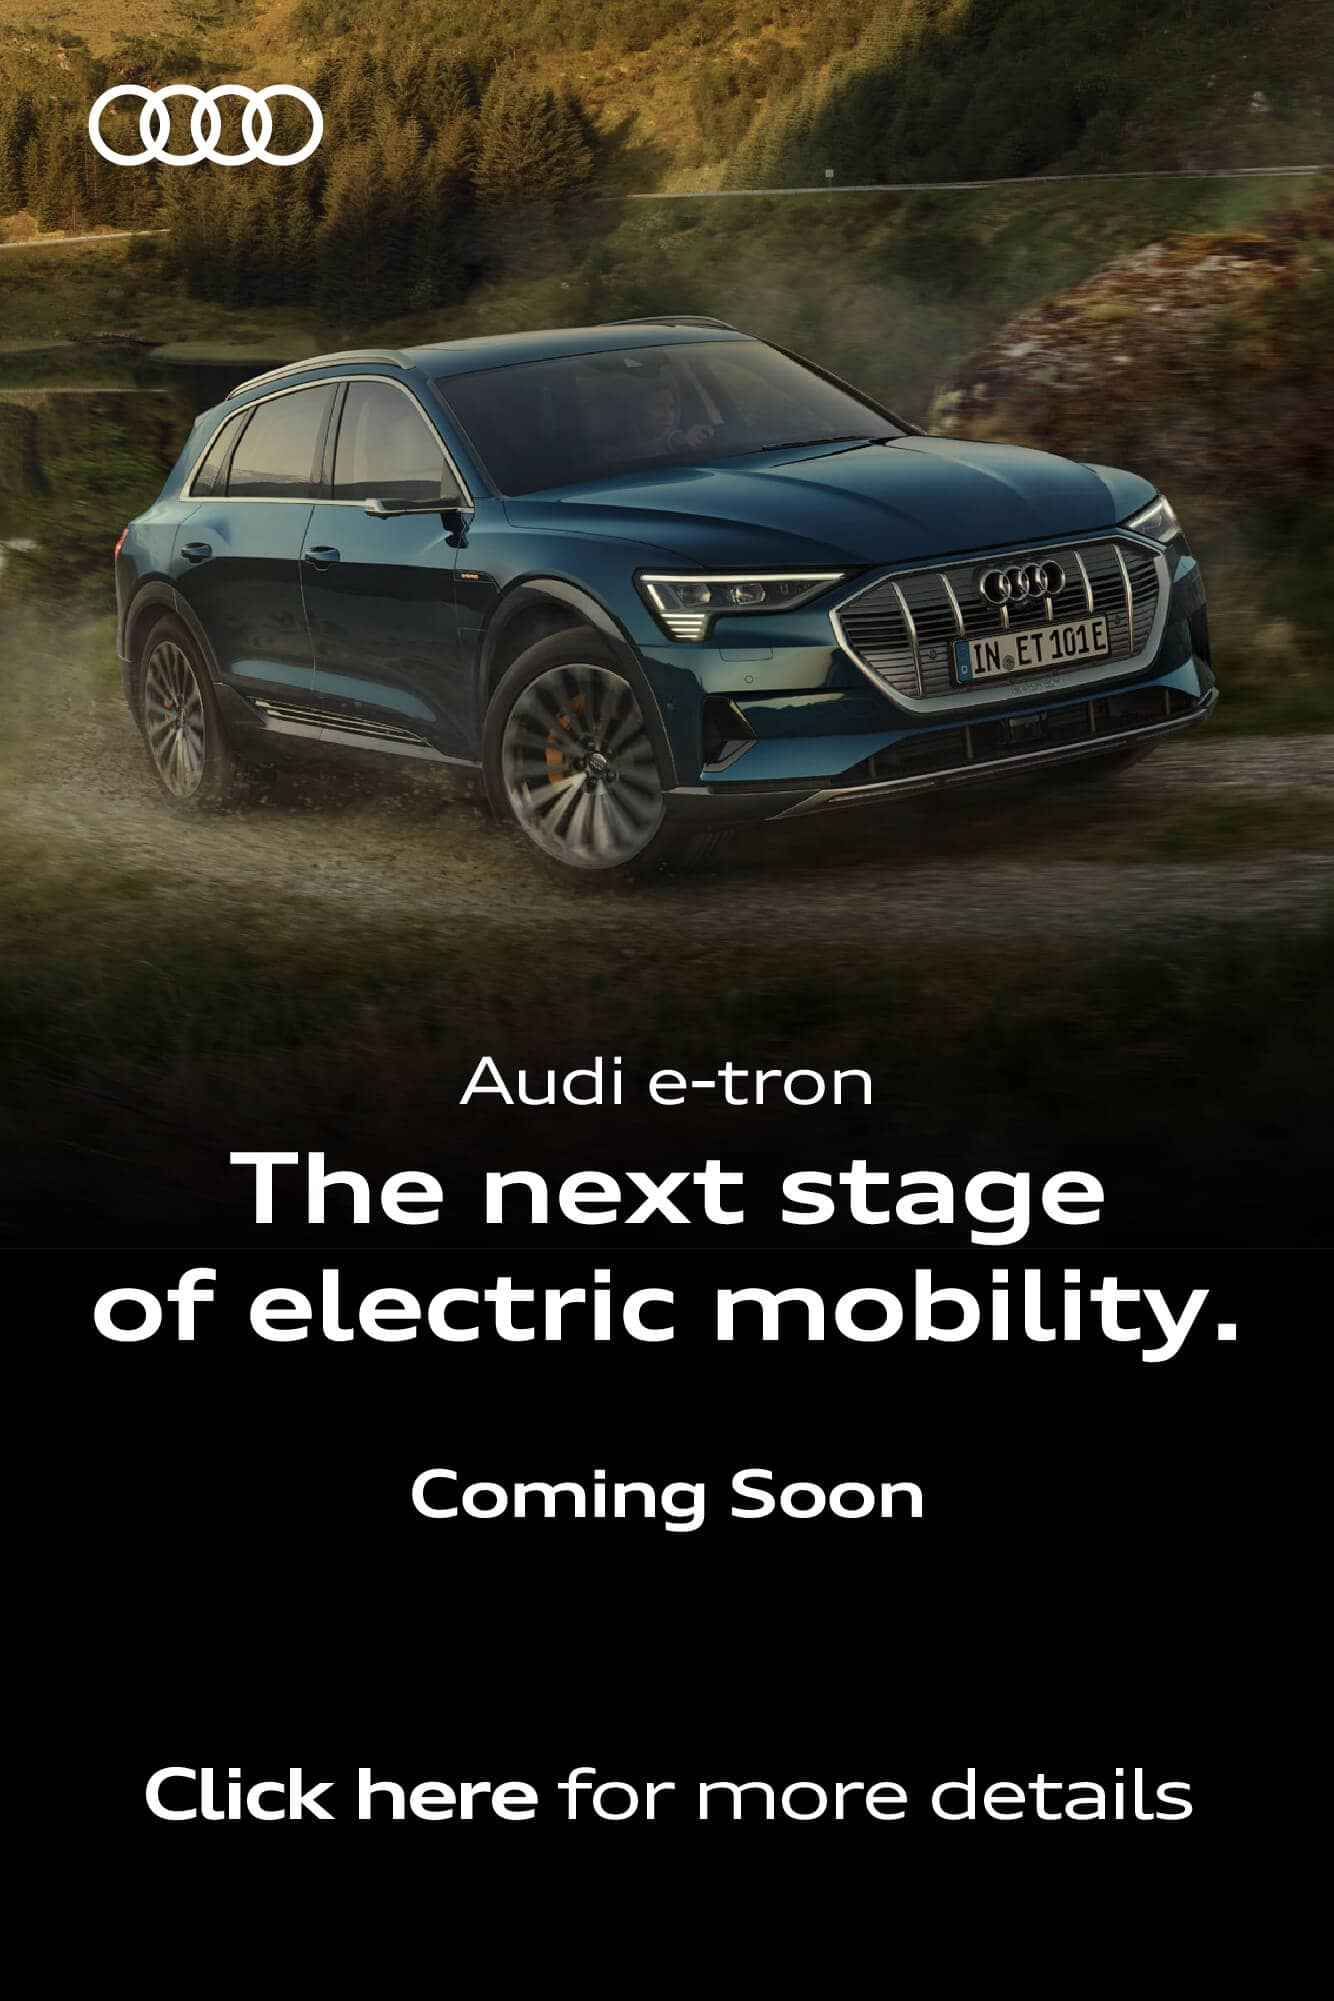 The New Audi e-tron BB